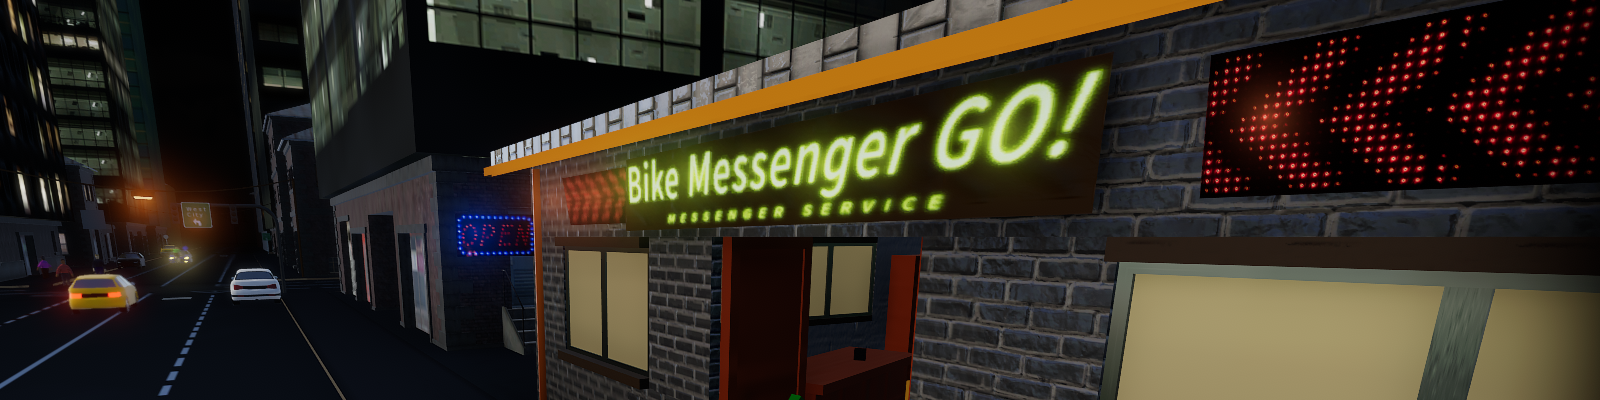 b.m.g 19 - bike messenger go!